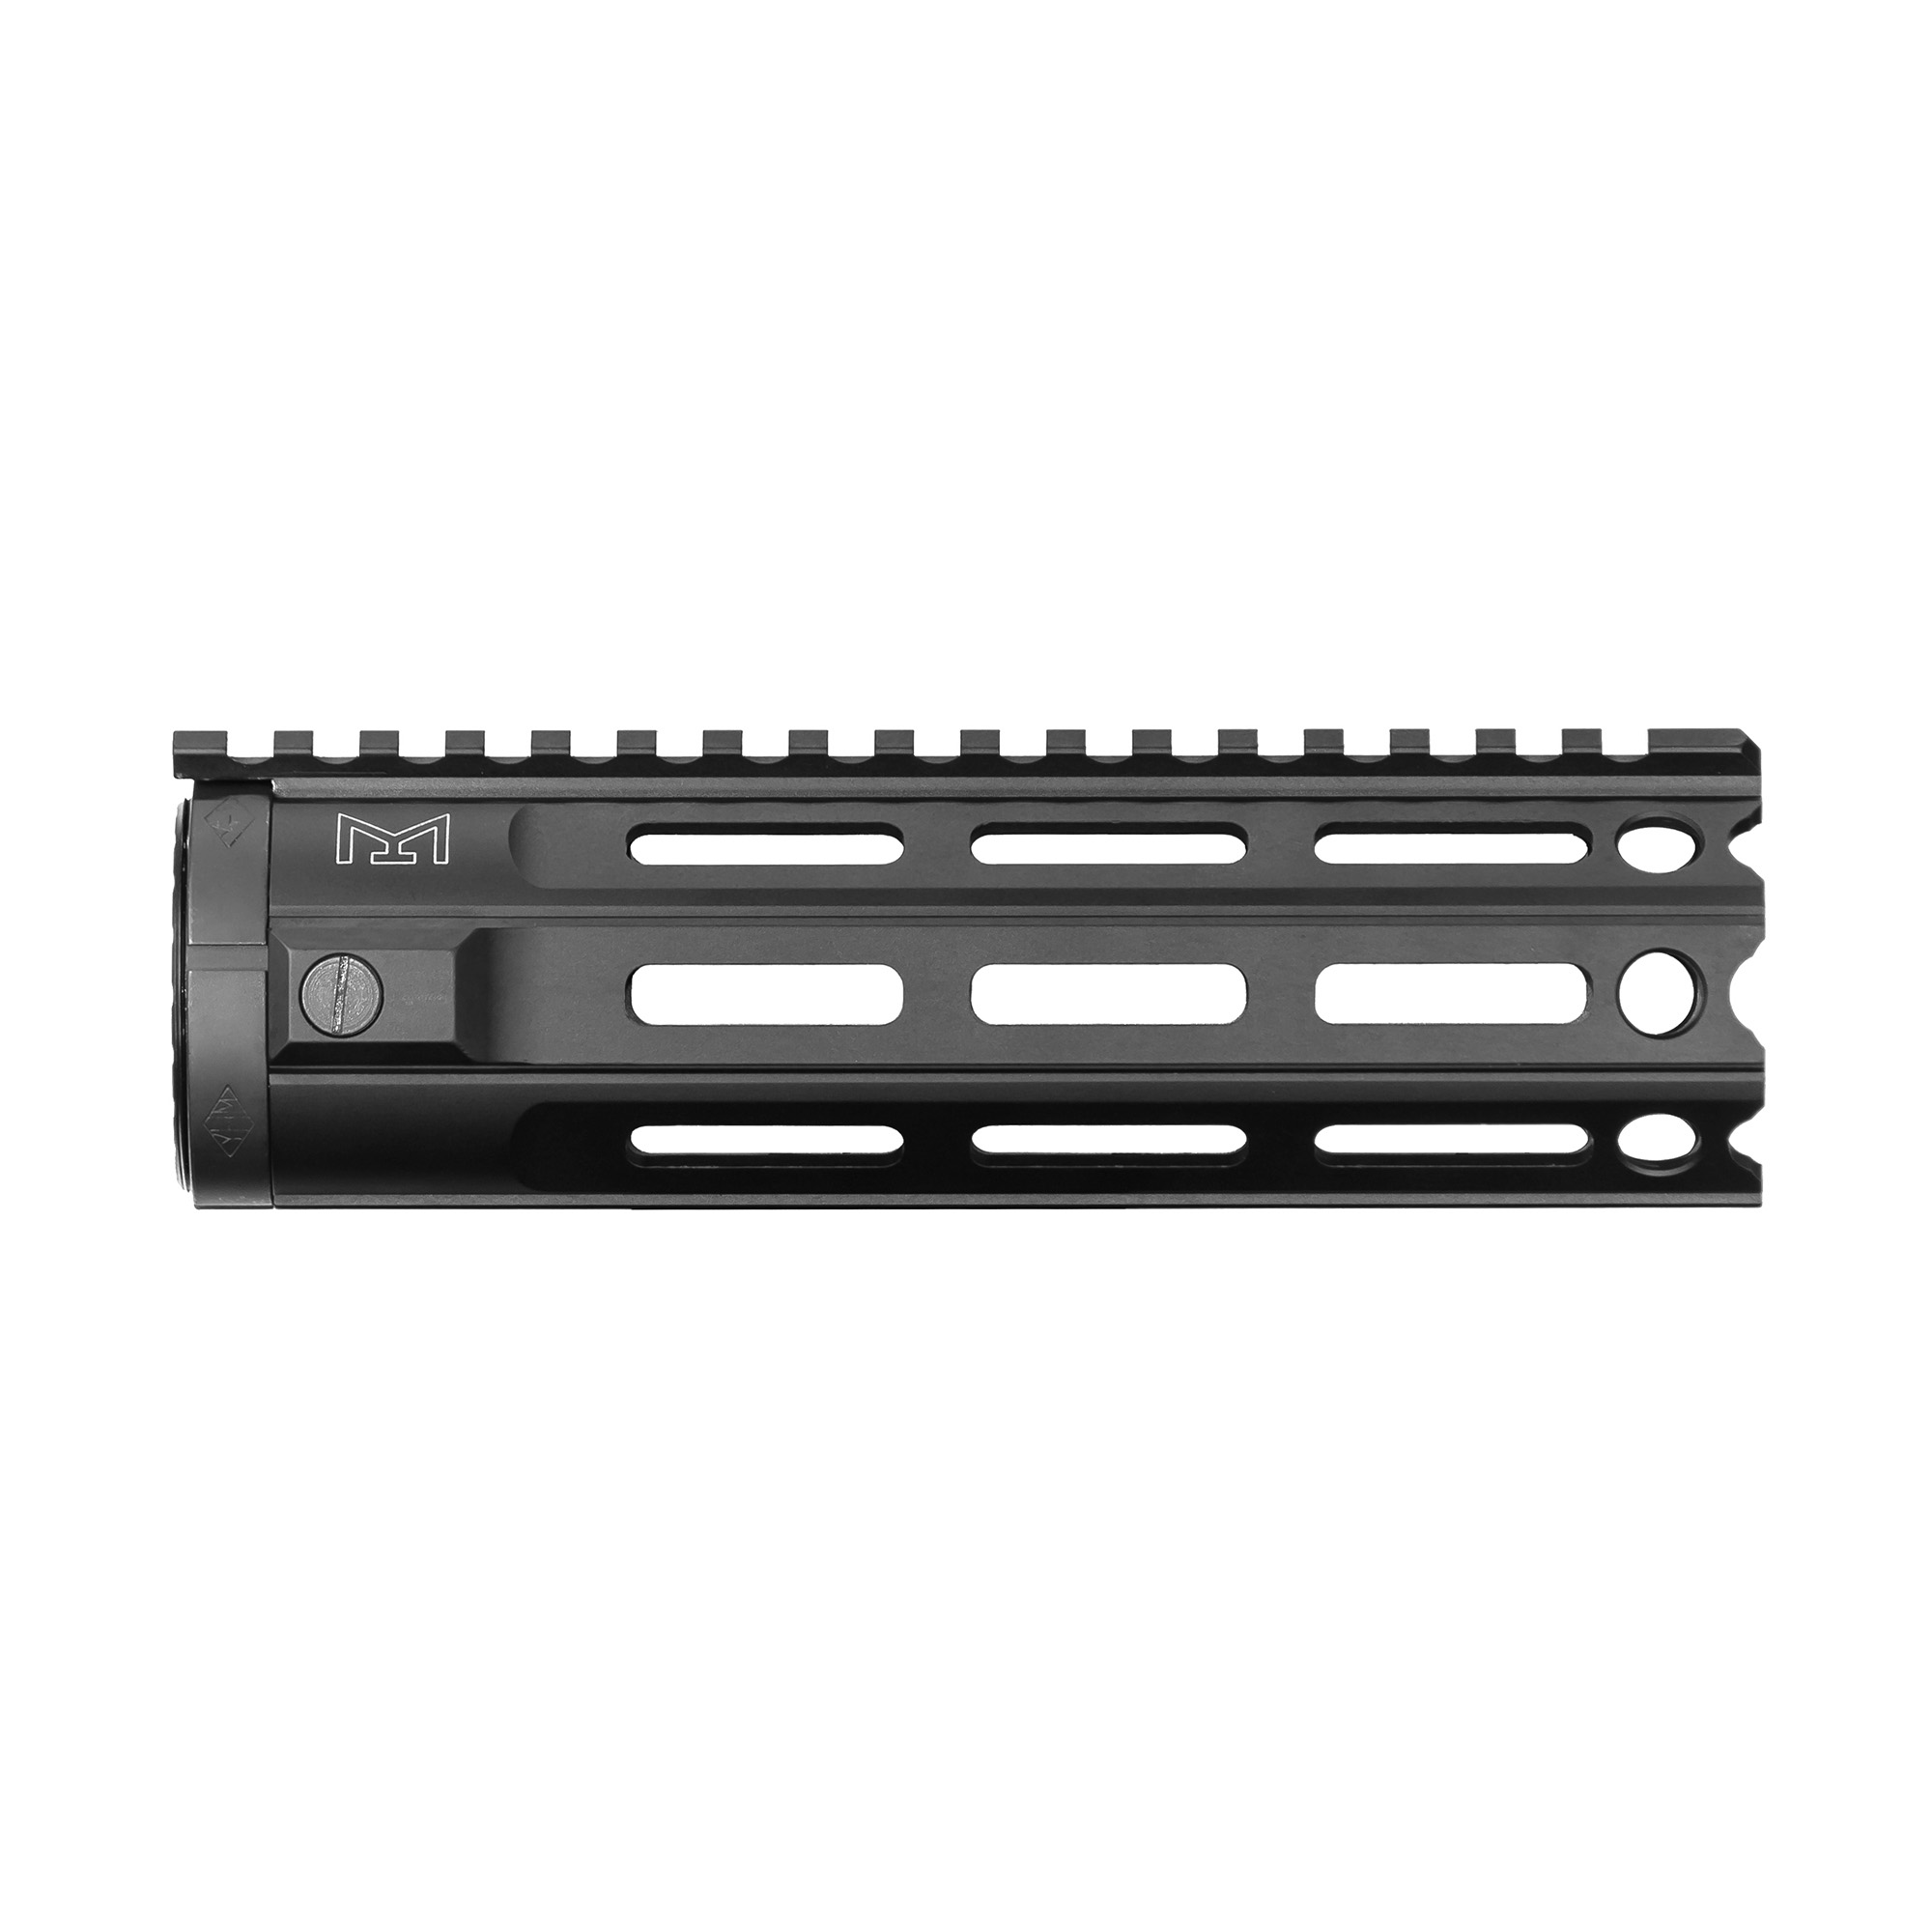 """Following the successful release of YHM S.L.K. and KR7 KeyMod handguards and in response to customer demand"""" Yankee Hill Machine is proud to introduce their new line of M-Lok rails"""" providing the same lightweight durability with the added versatility of the popular mounting platform. The MR7 is one of their lightest handguards to date"""" but you can still add accessories along the entire handguard length"""" even at every 45 degree position. Note: This handguard features a """"T"""" marked extended top rail."""